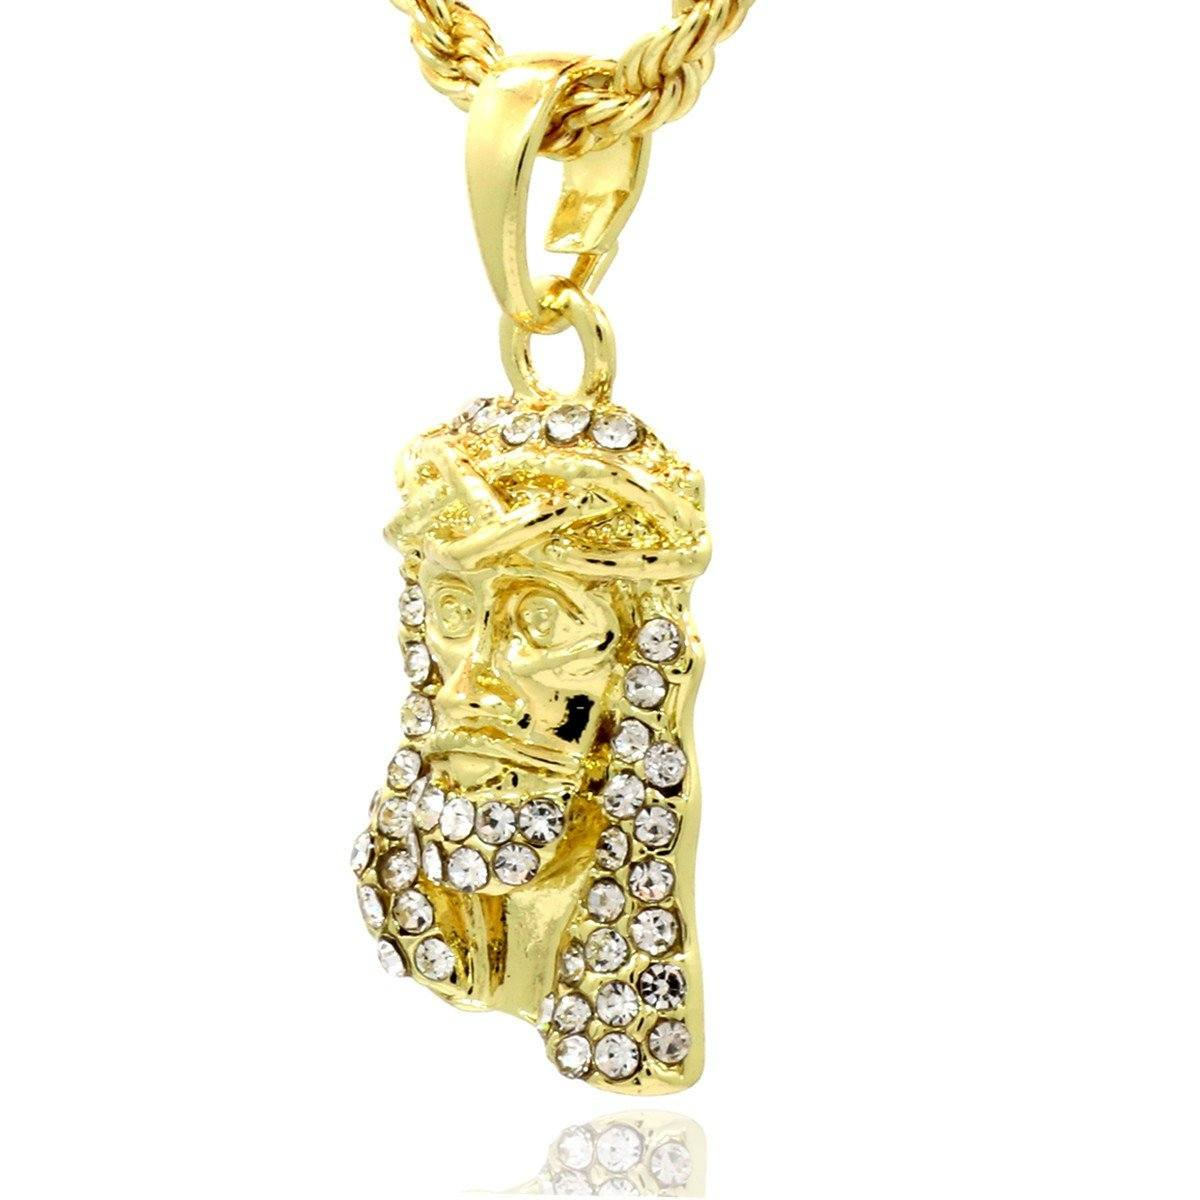 MINI JESUS PENDANT WITH GOLD ROPE CHAIN